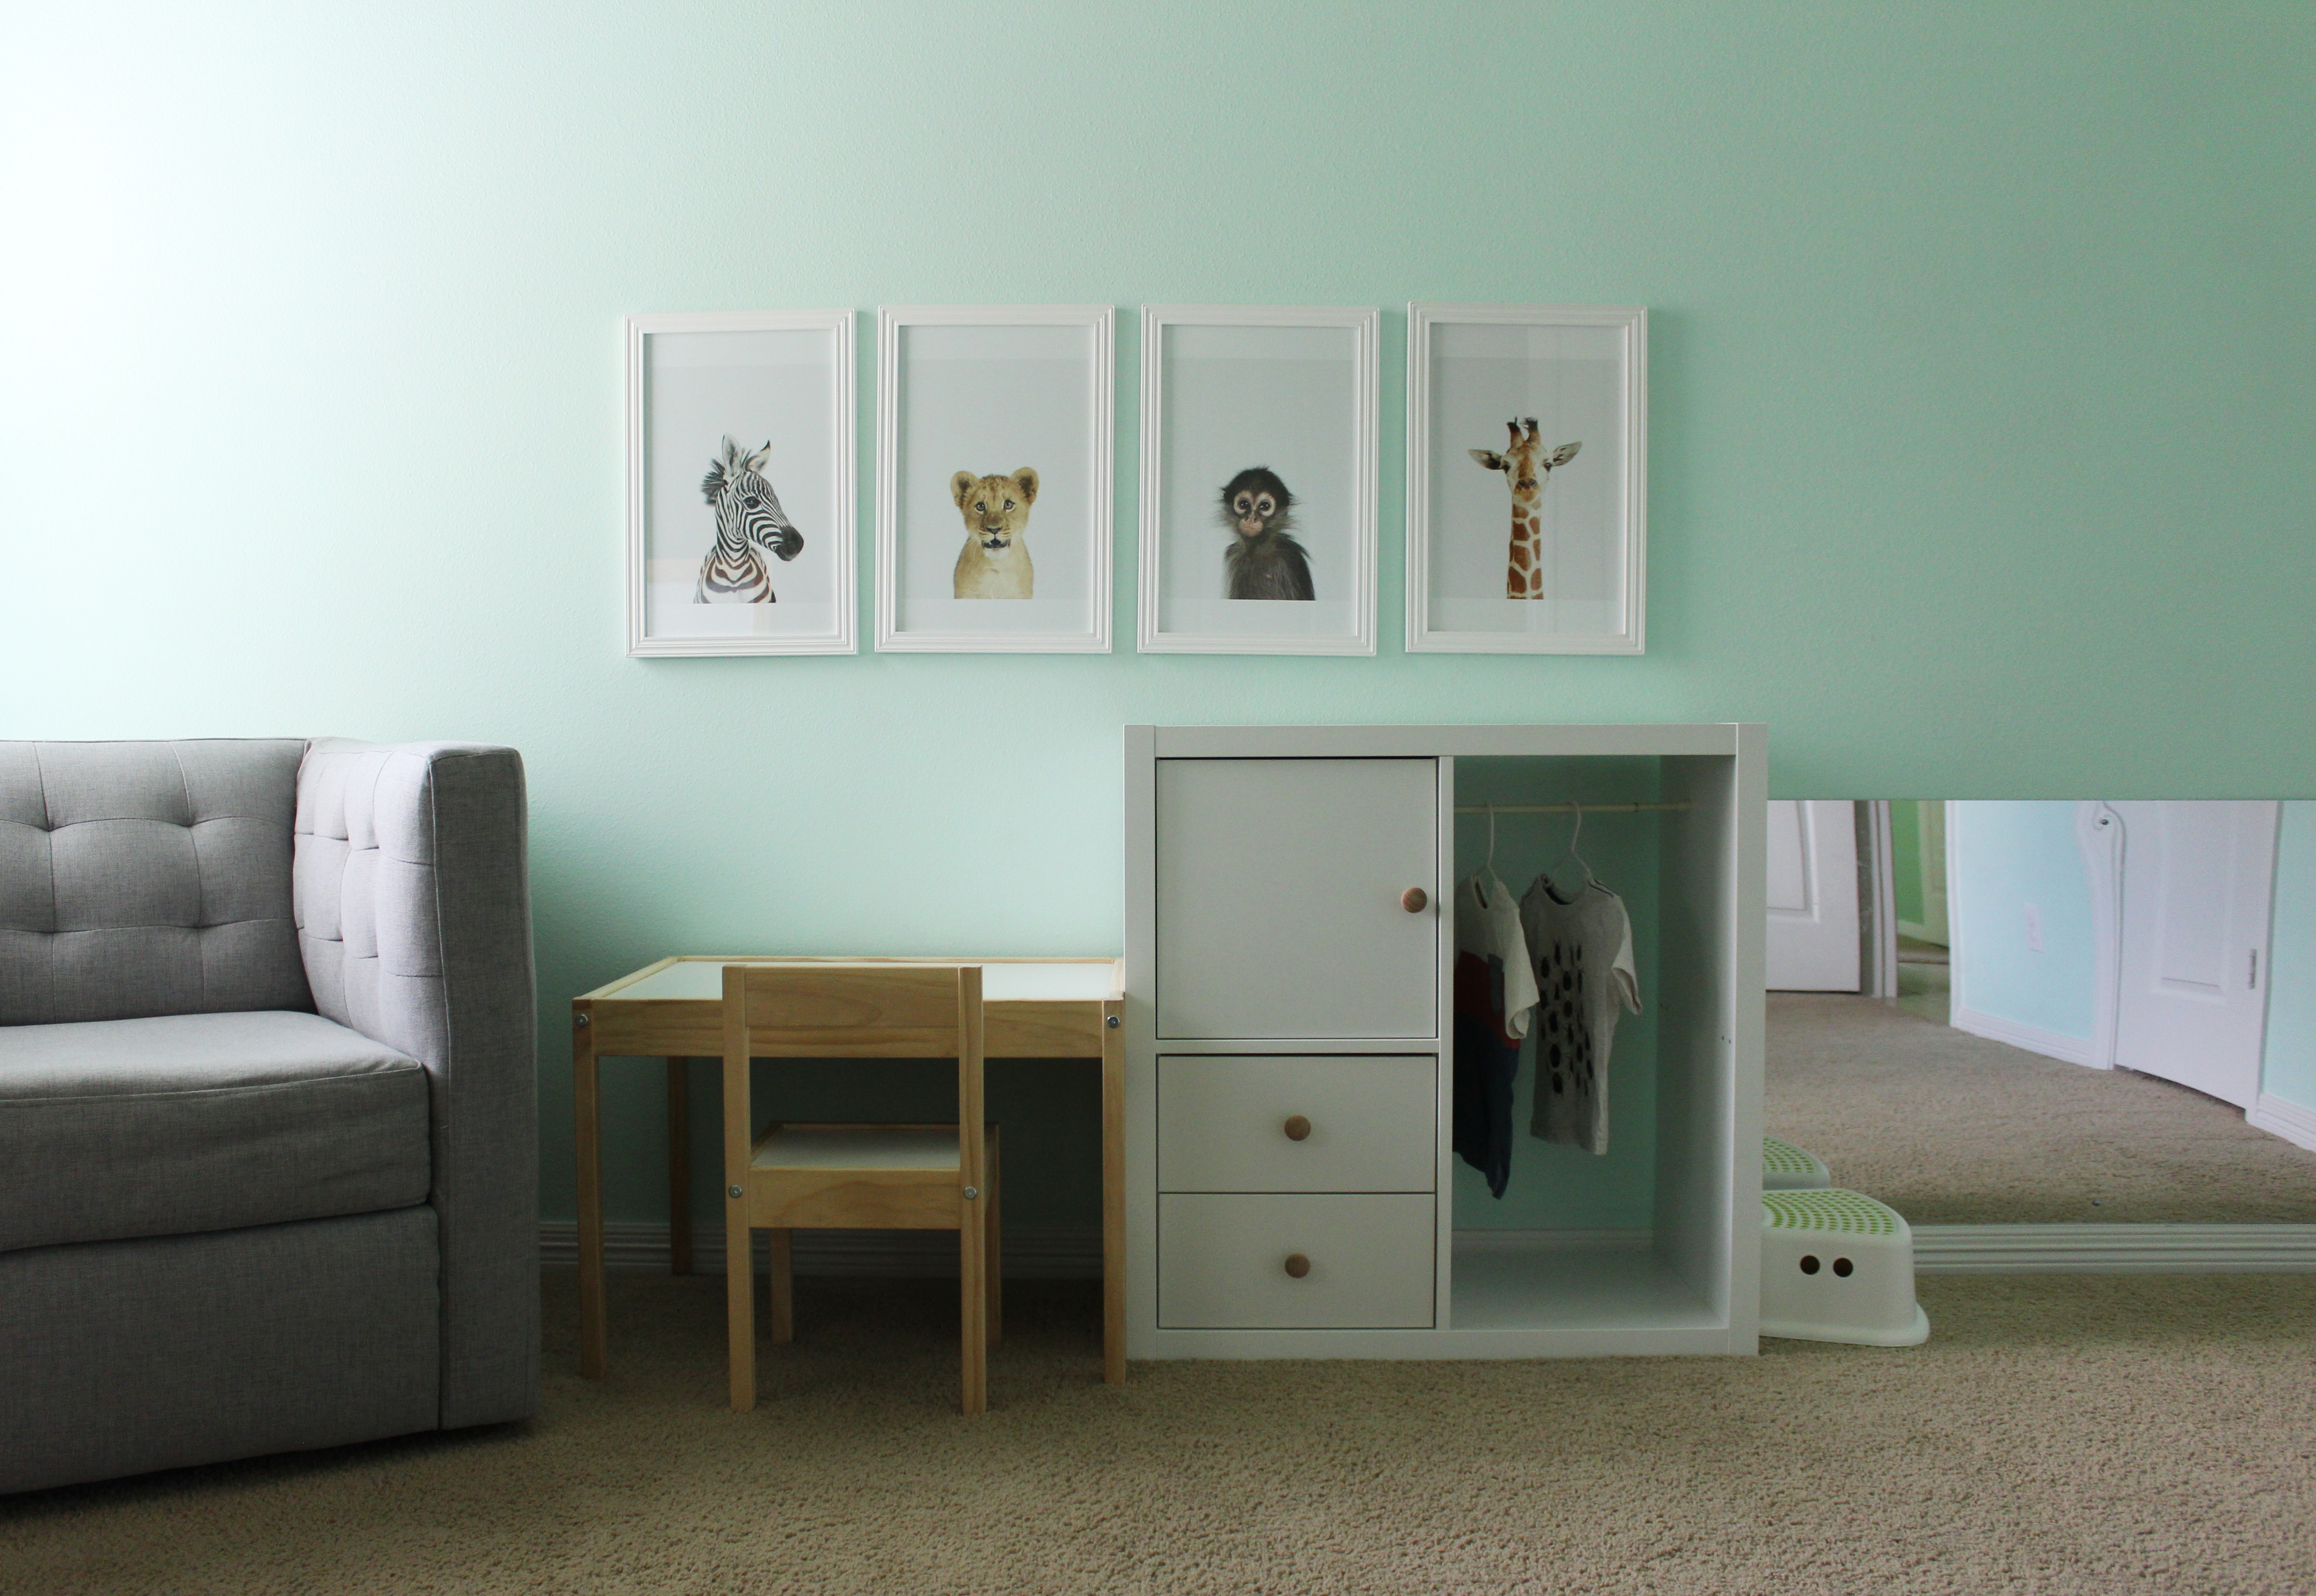 Montessori Inspired Bedroom At 18 Months This Merry Montessori